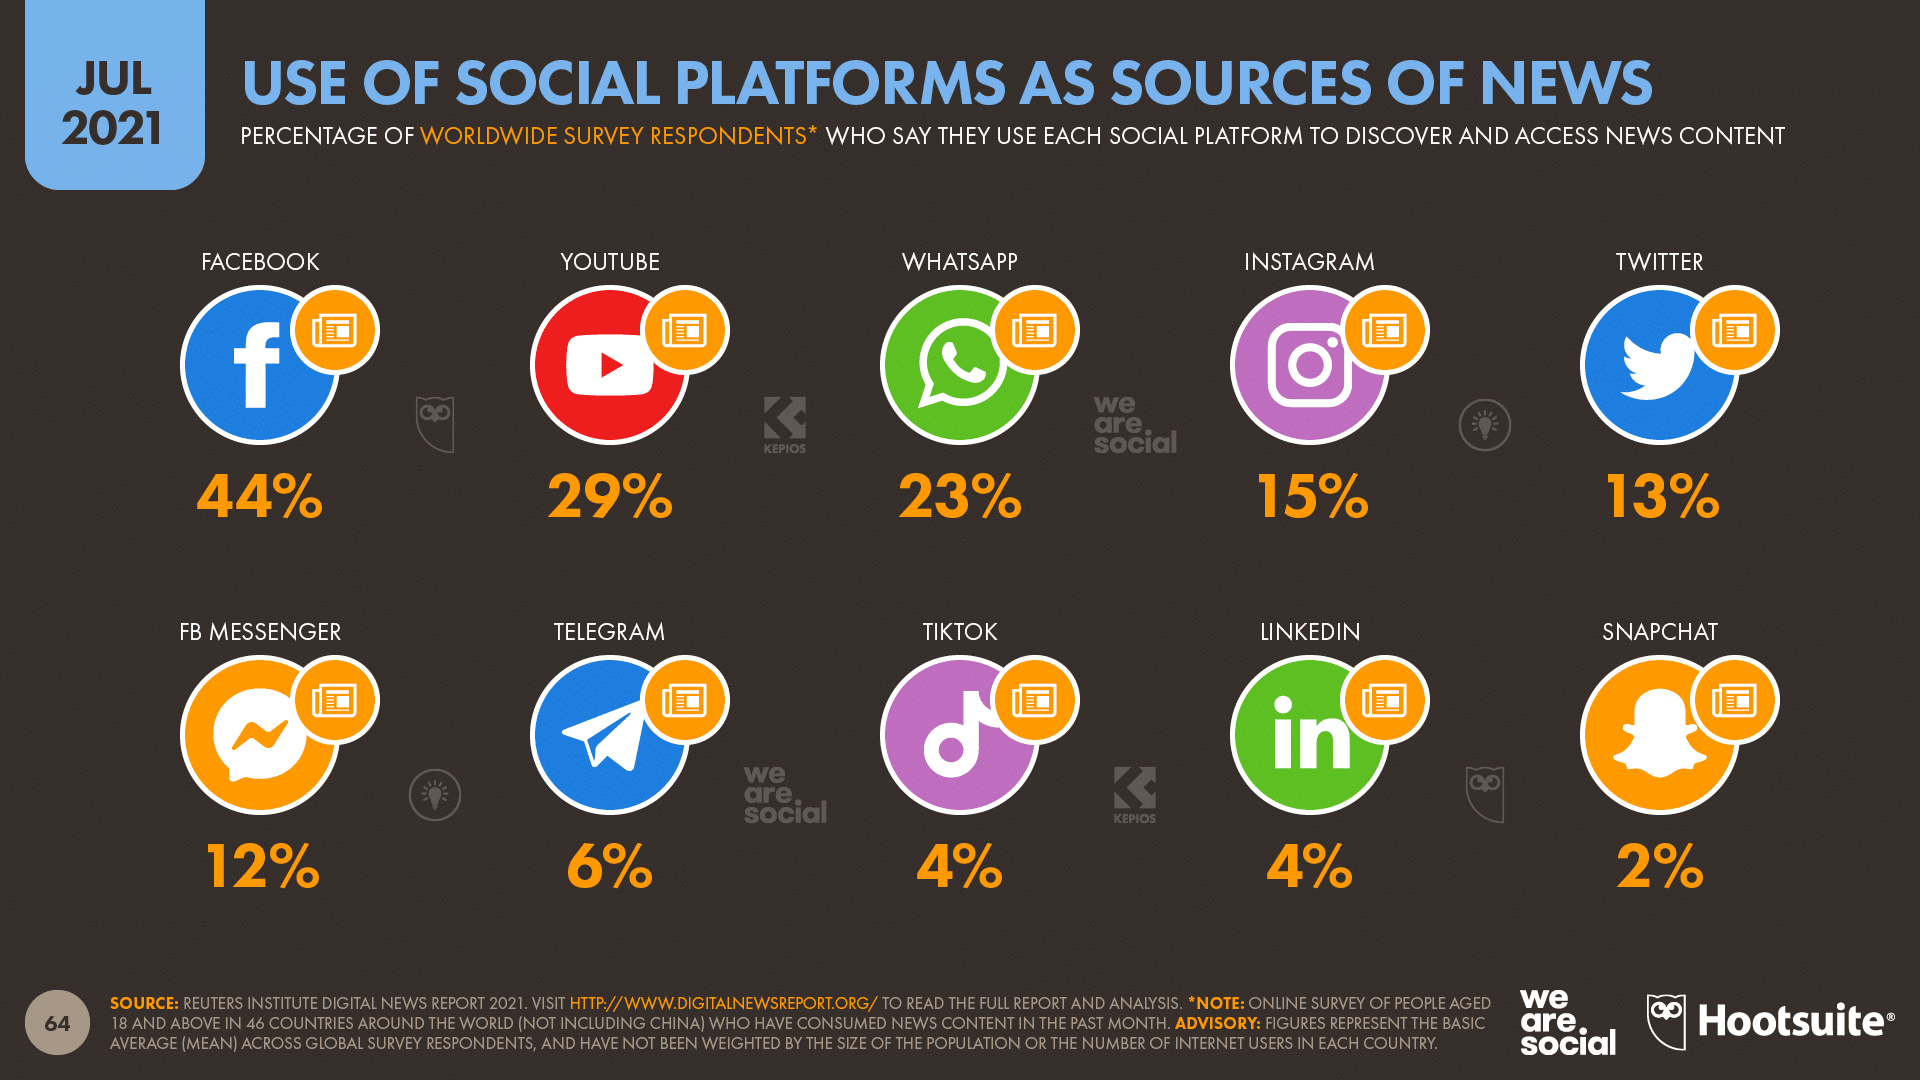 chart showing use of social platforms as sources of news as of July 2021